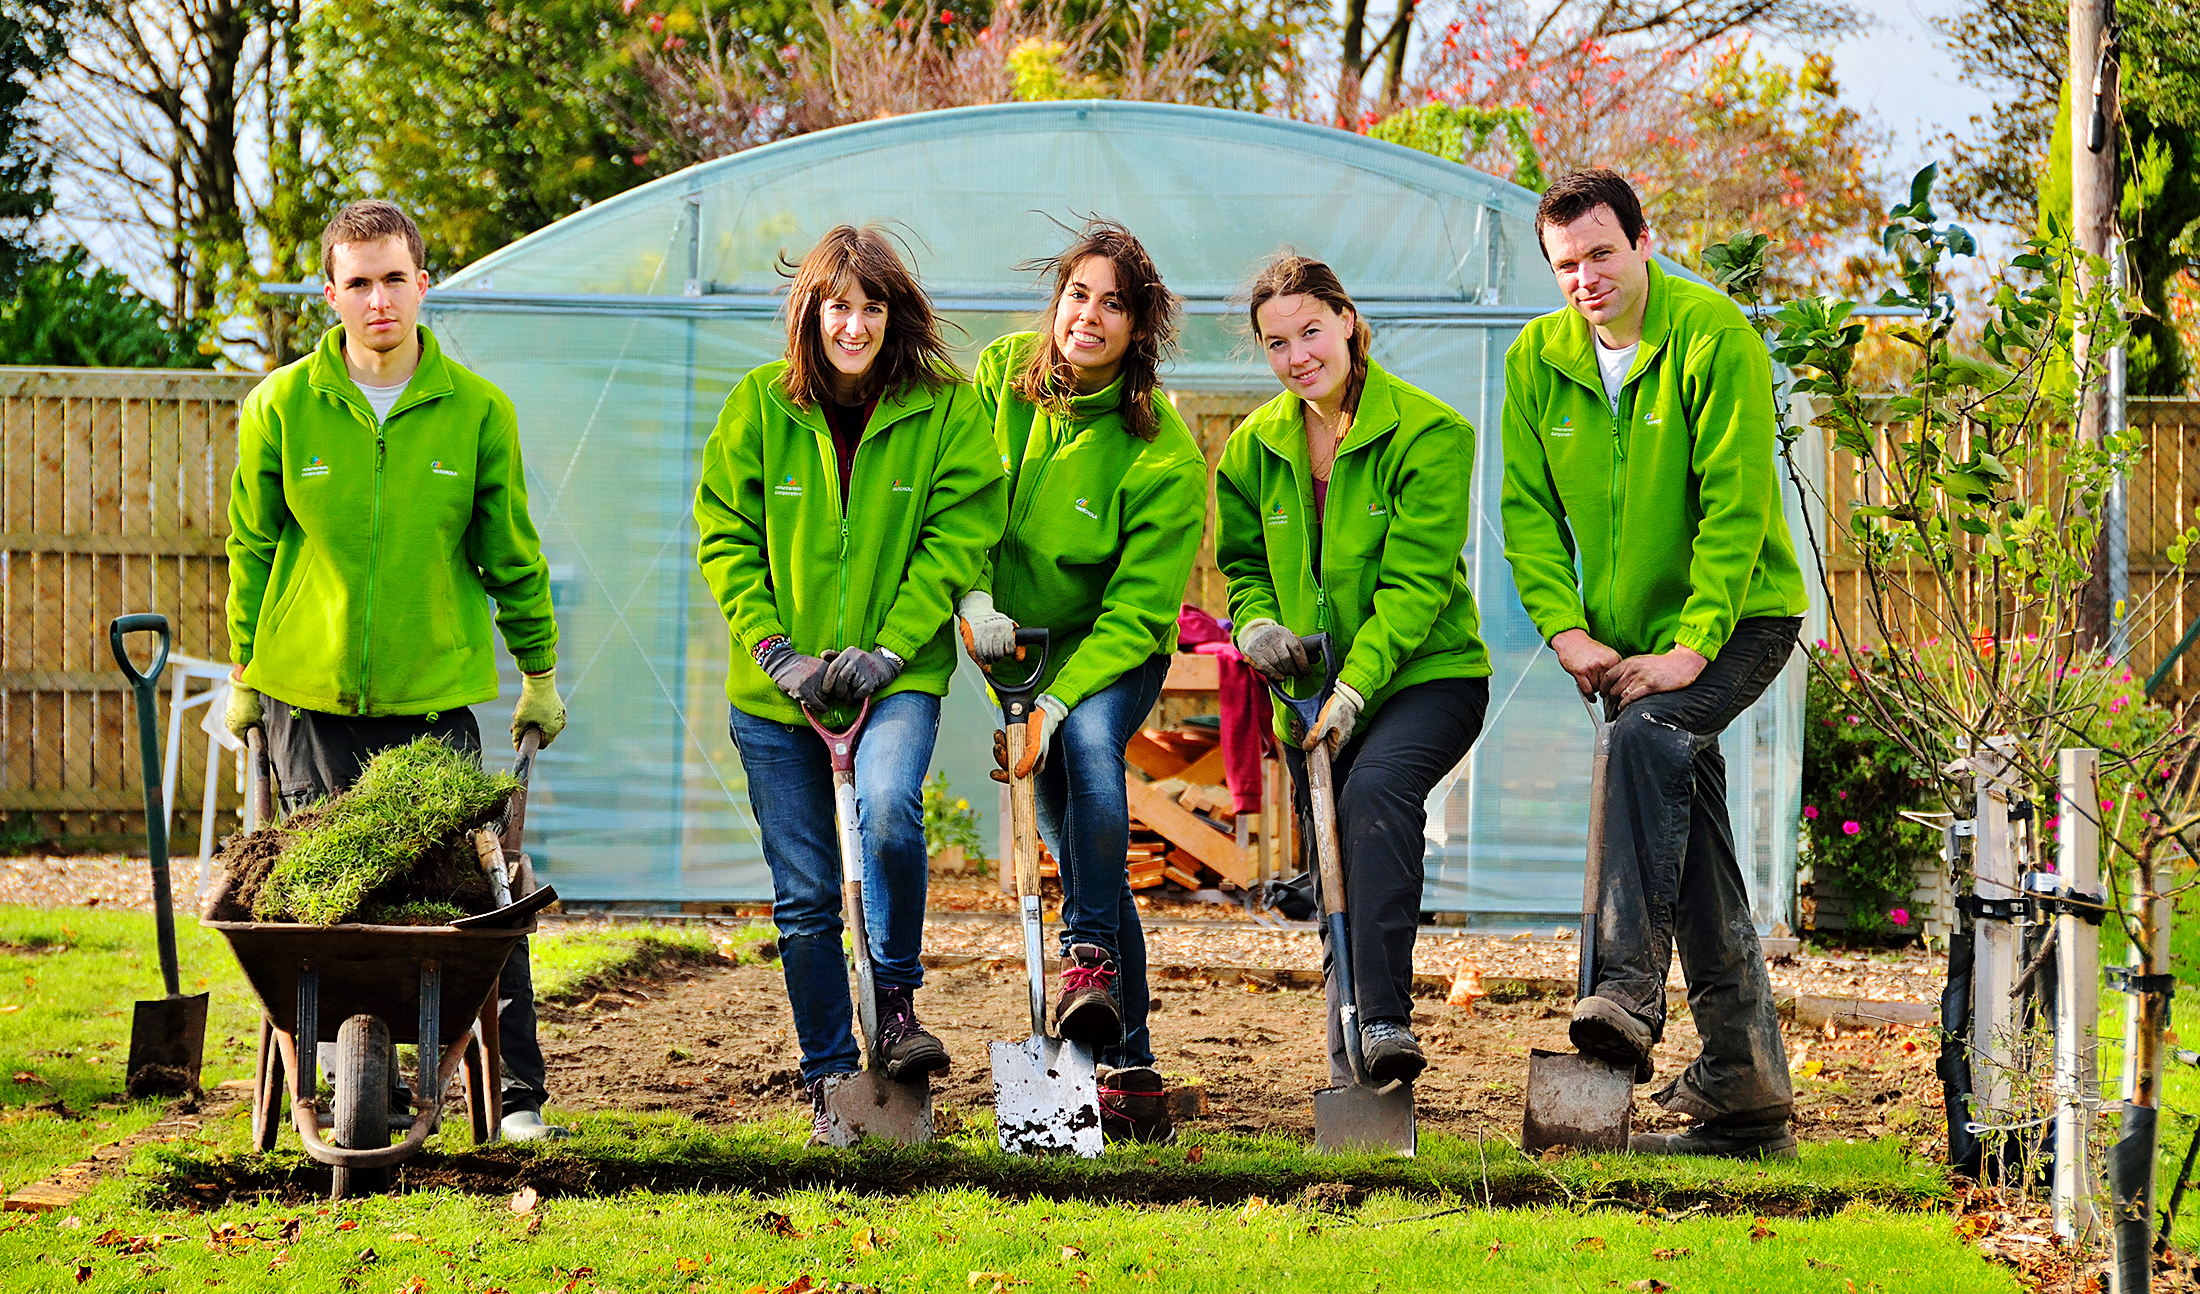 Participants at Iberdrola's corporate volunteering programme, which took place in the UK, Spain, Brazil and the US